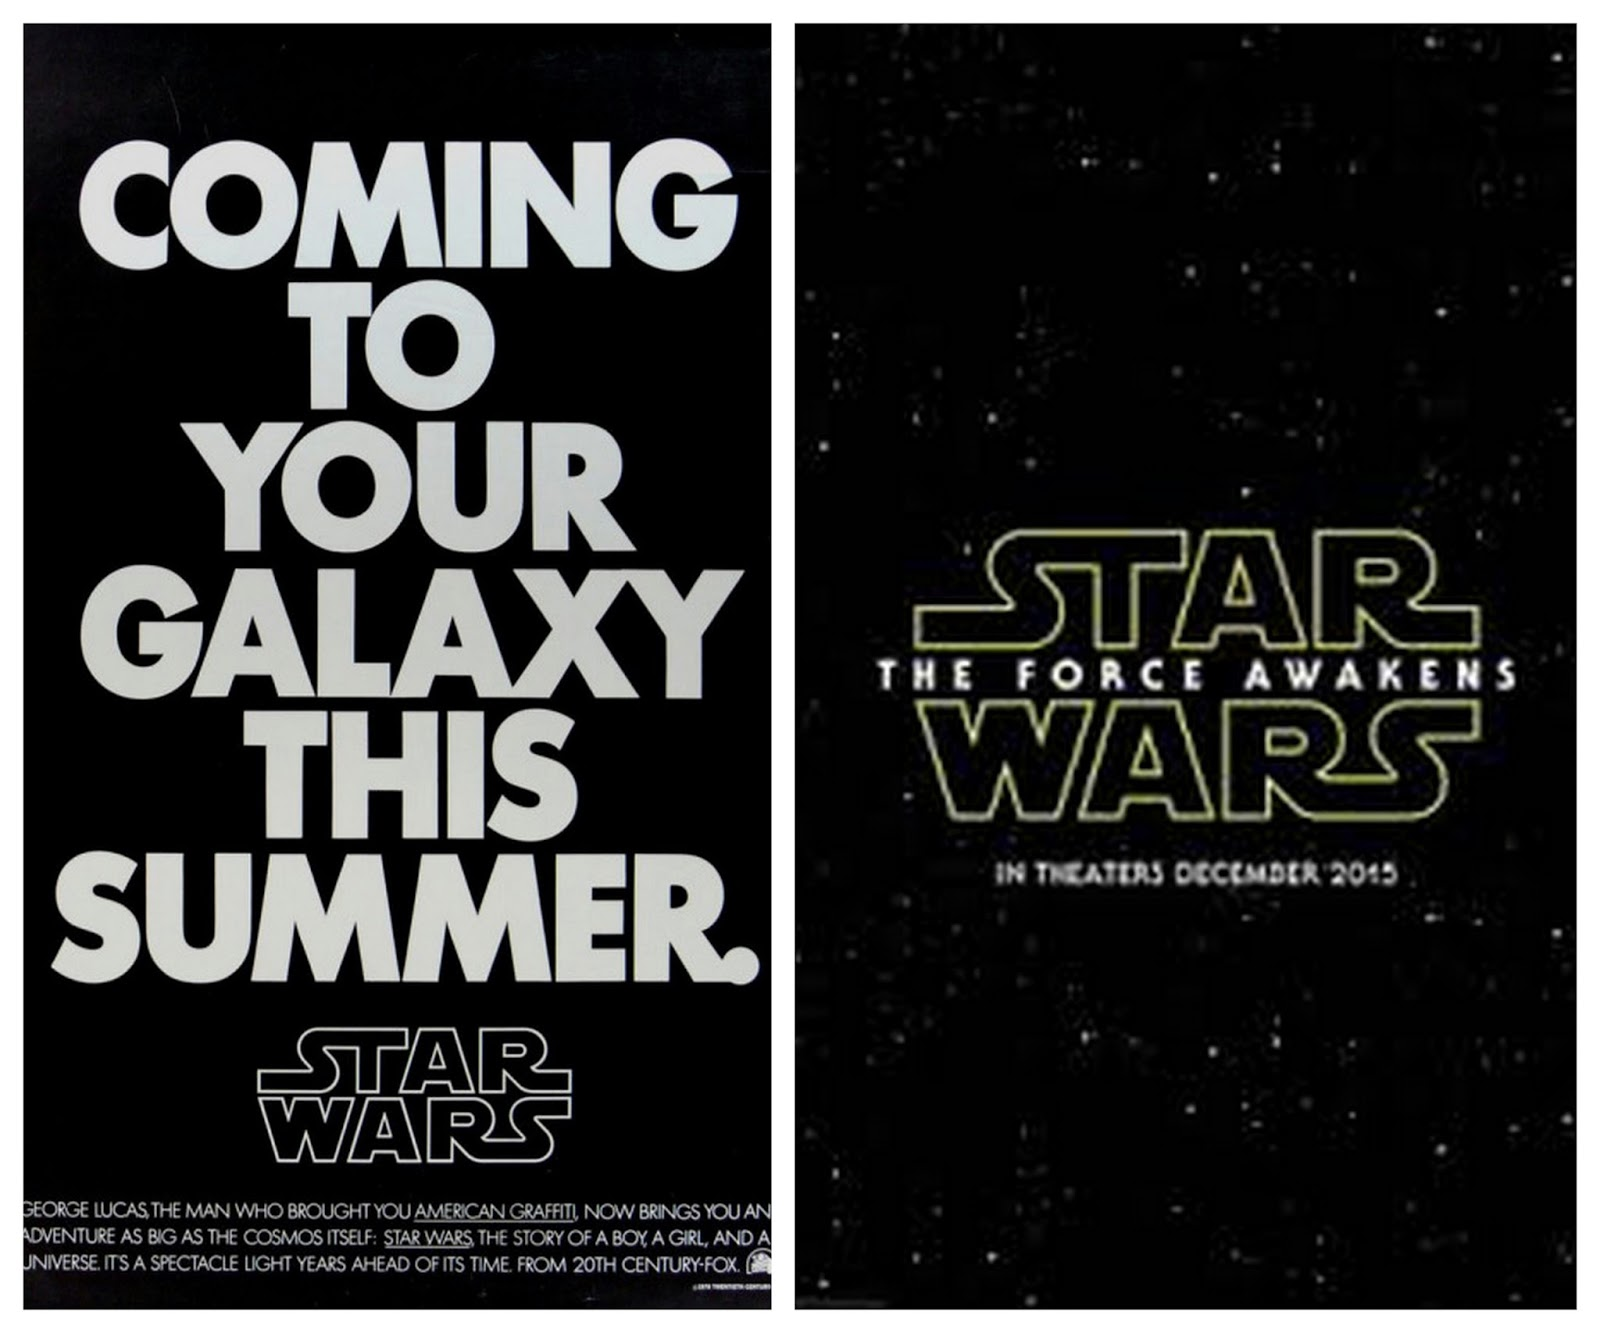 ... perfect snapshot of when all the new 'Star Wars' movies are coming out